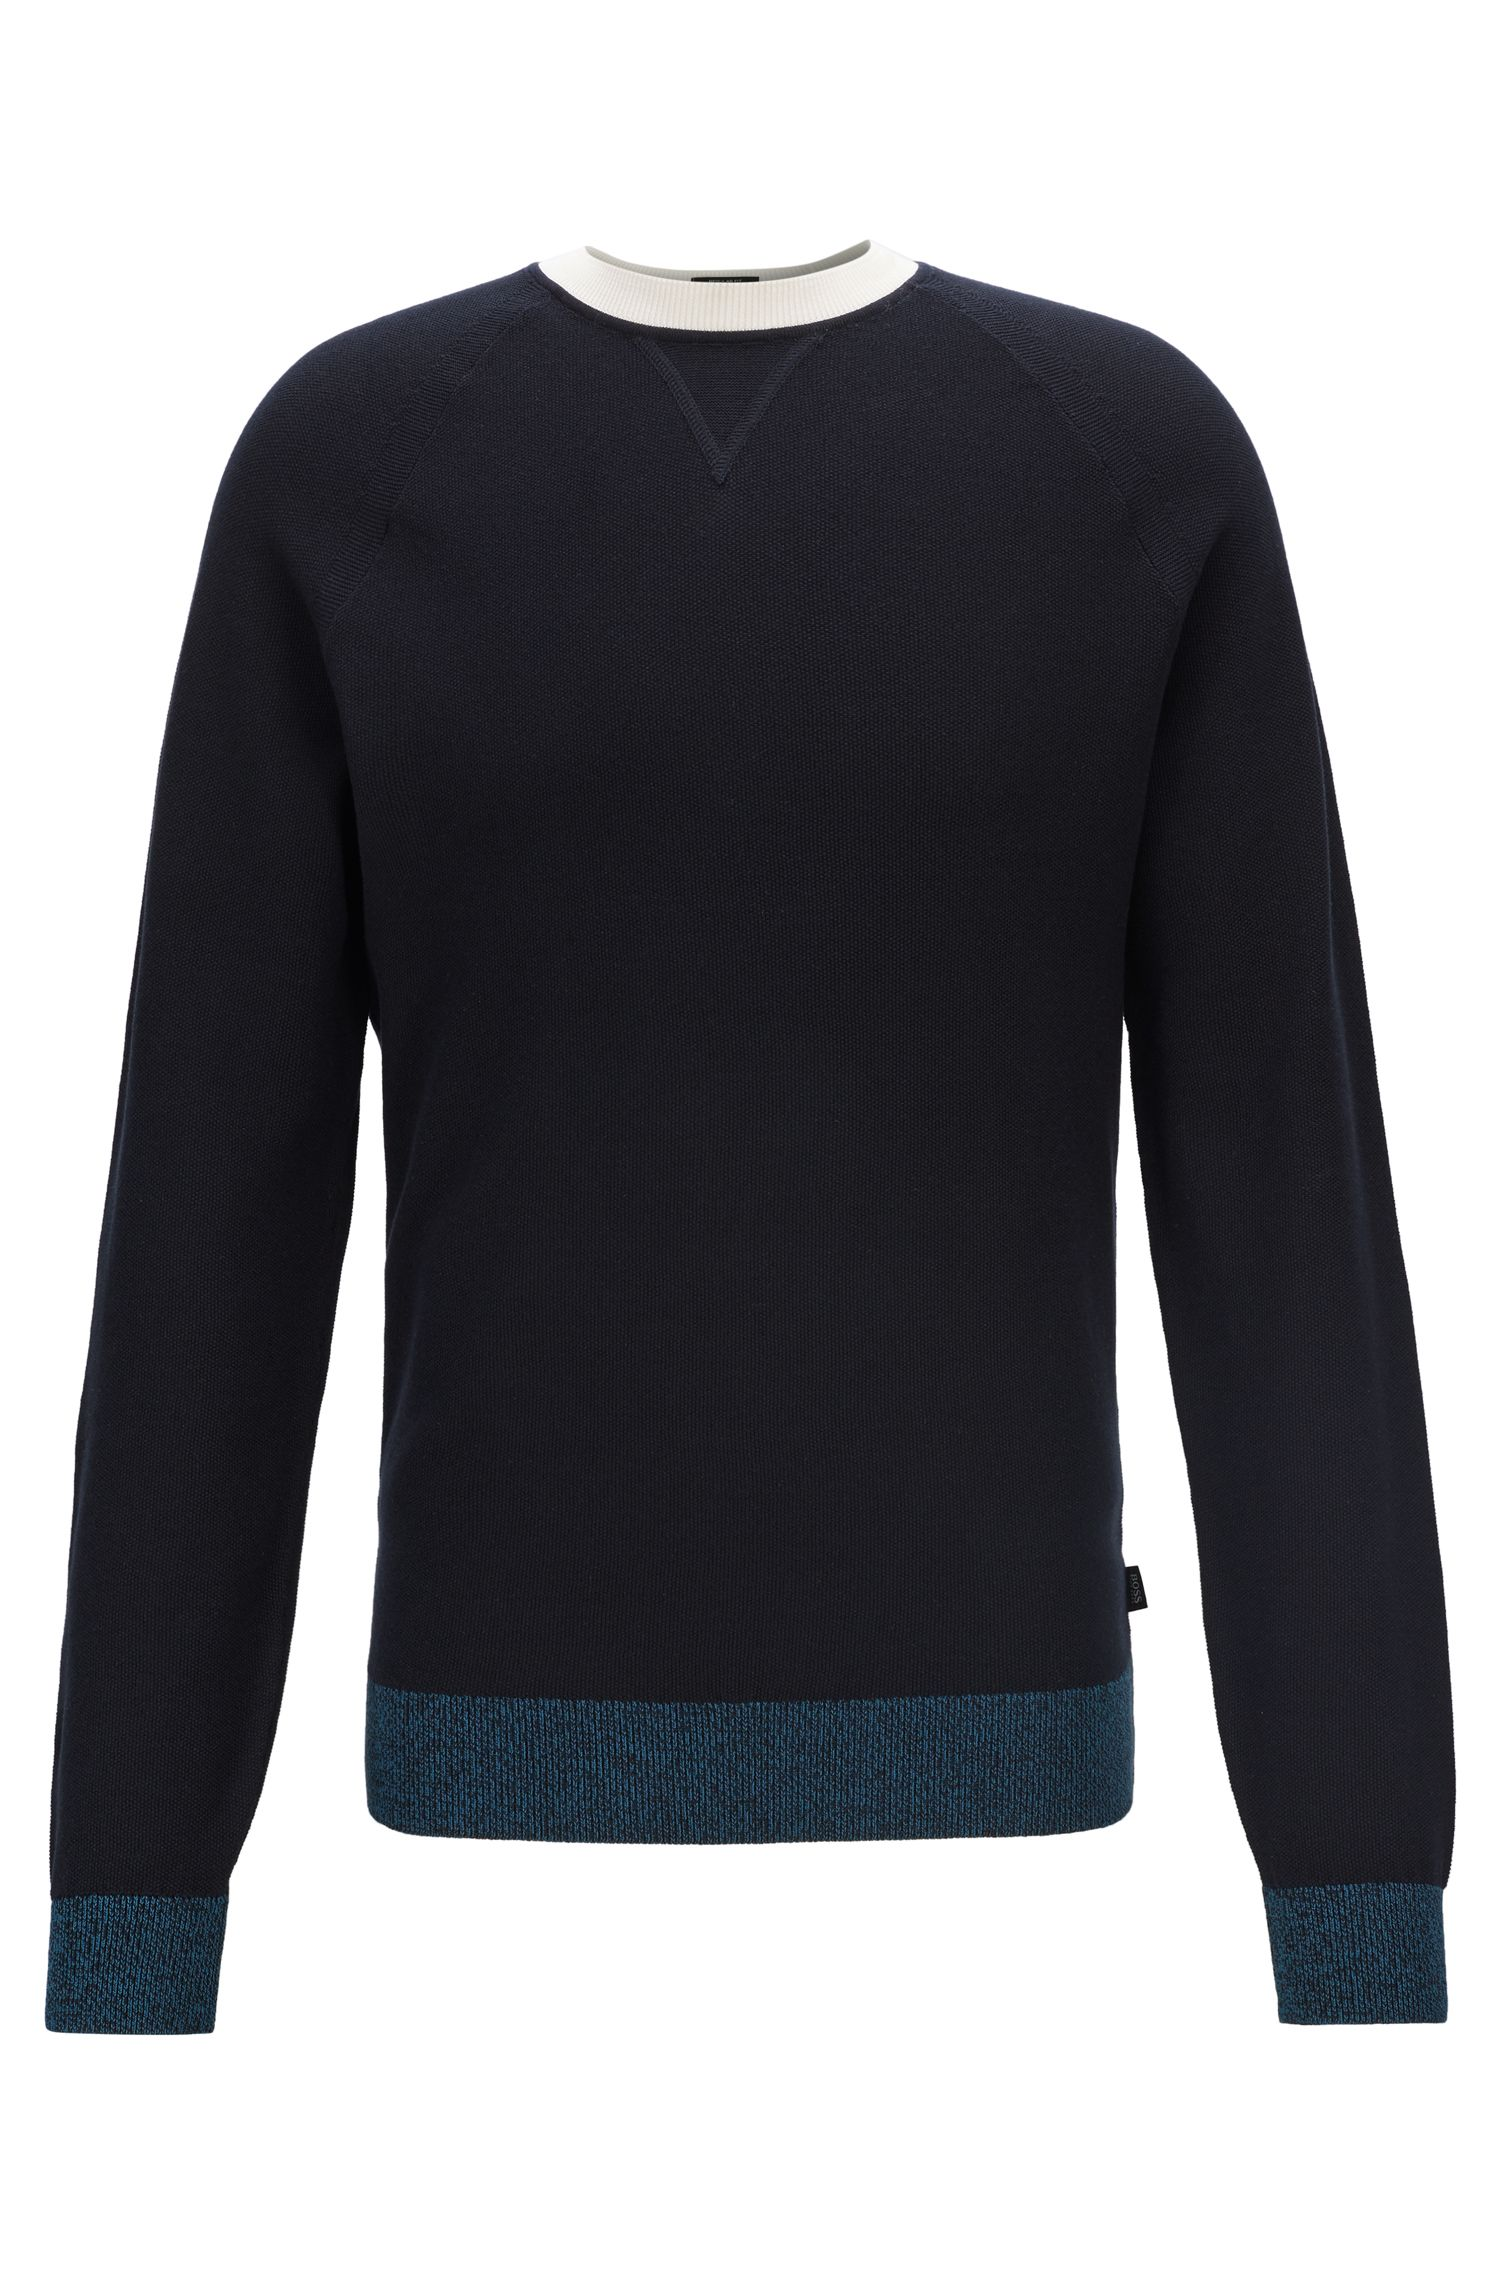 Knitted sweater in Italian Pima cotton with contrast details, Dark Blue